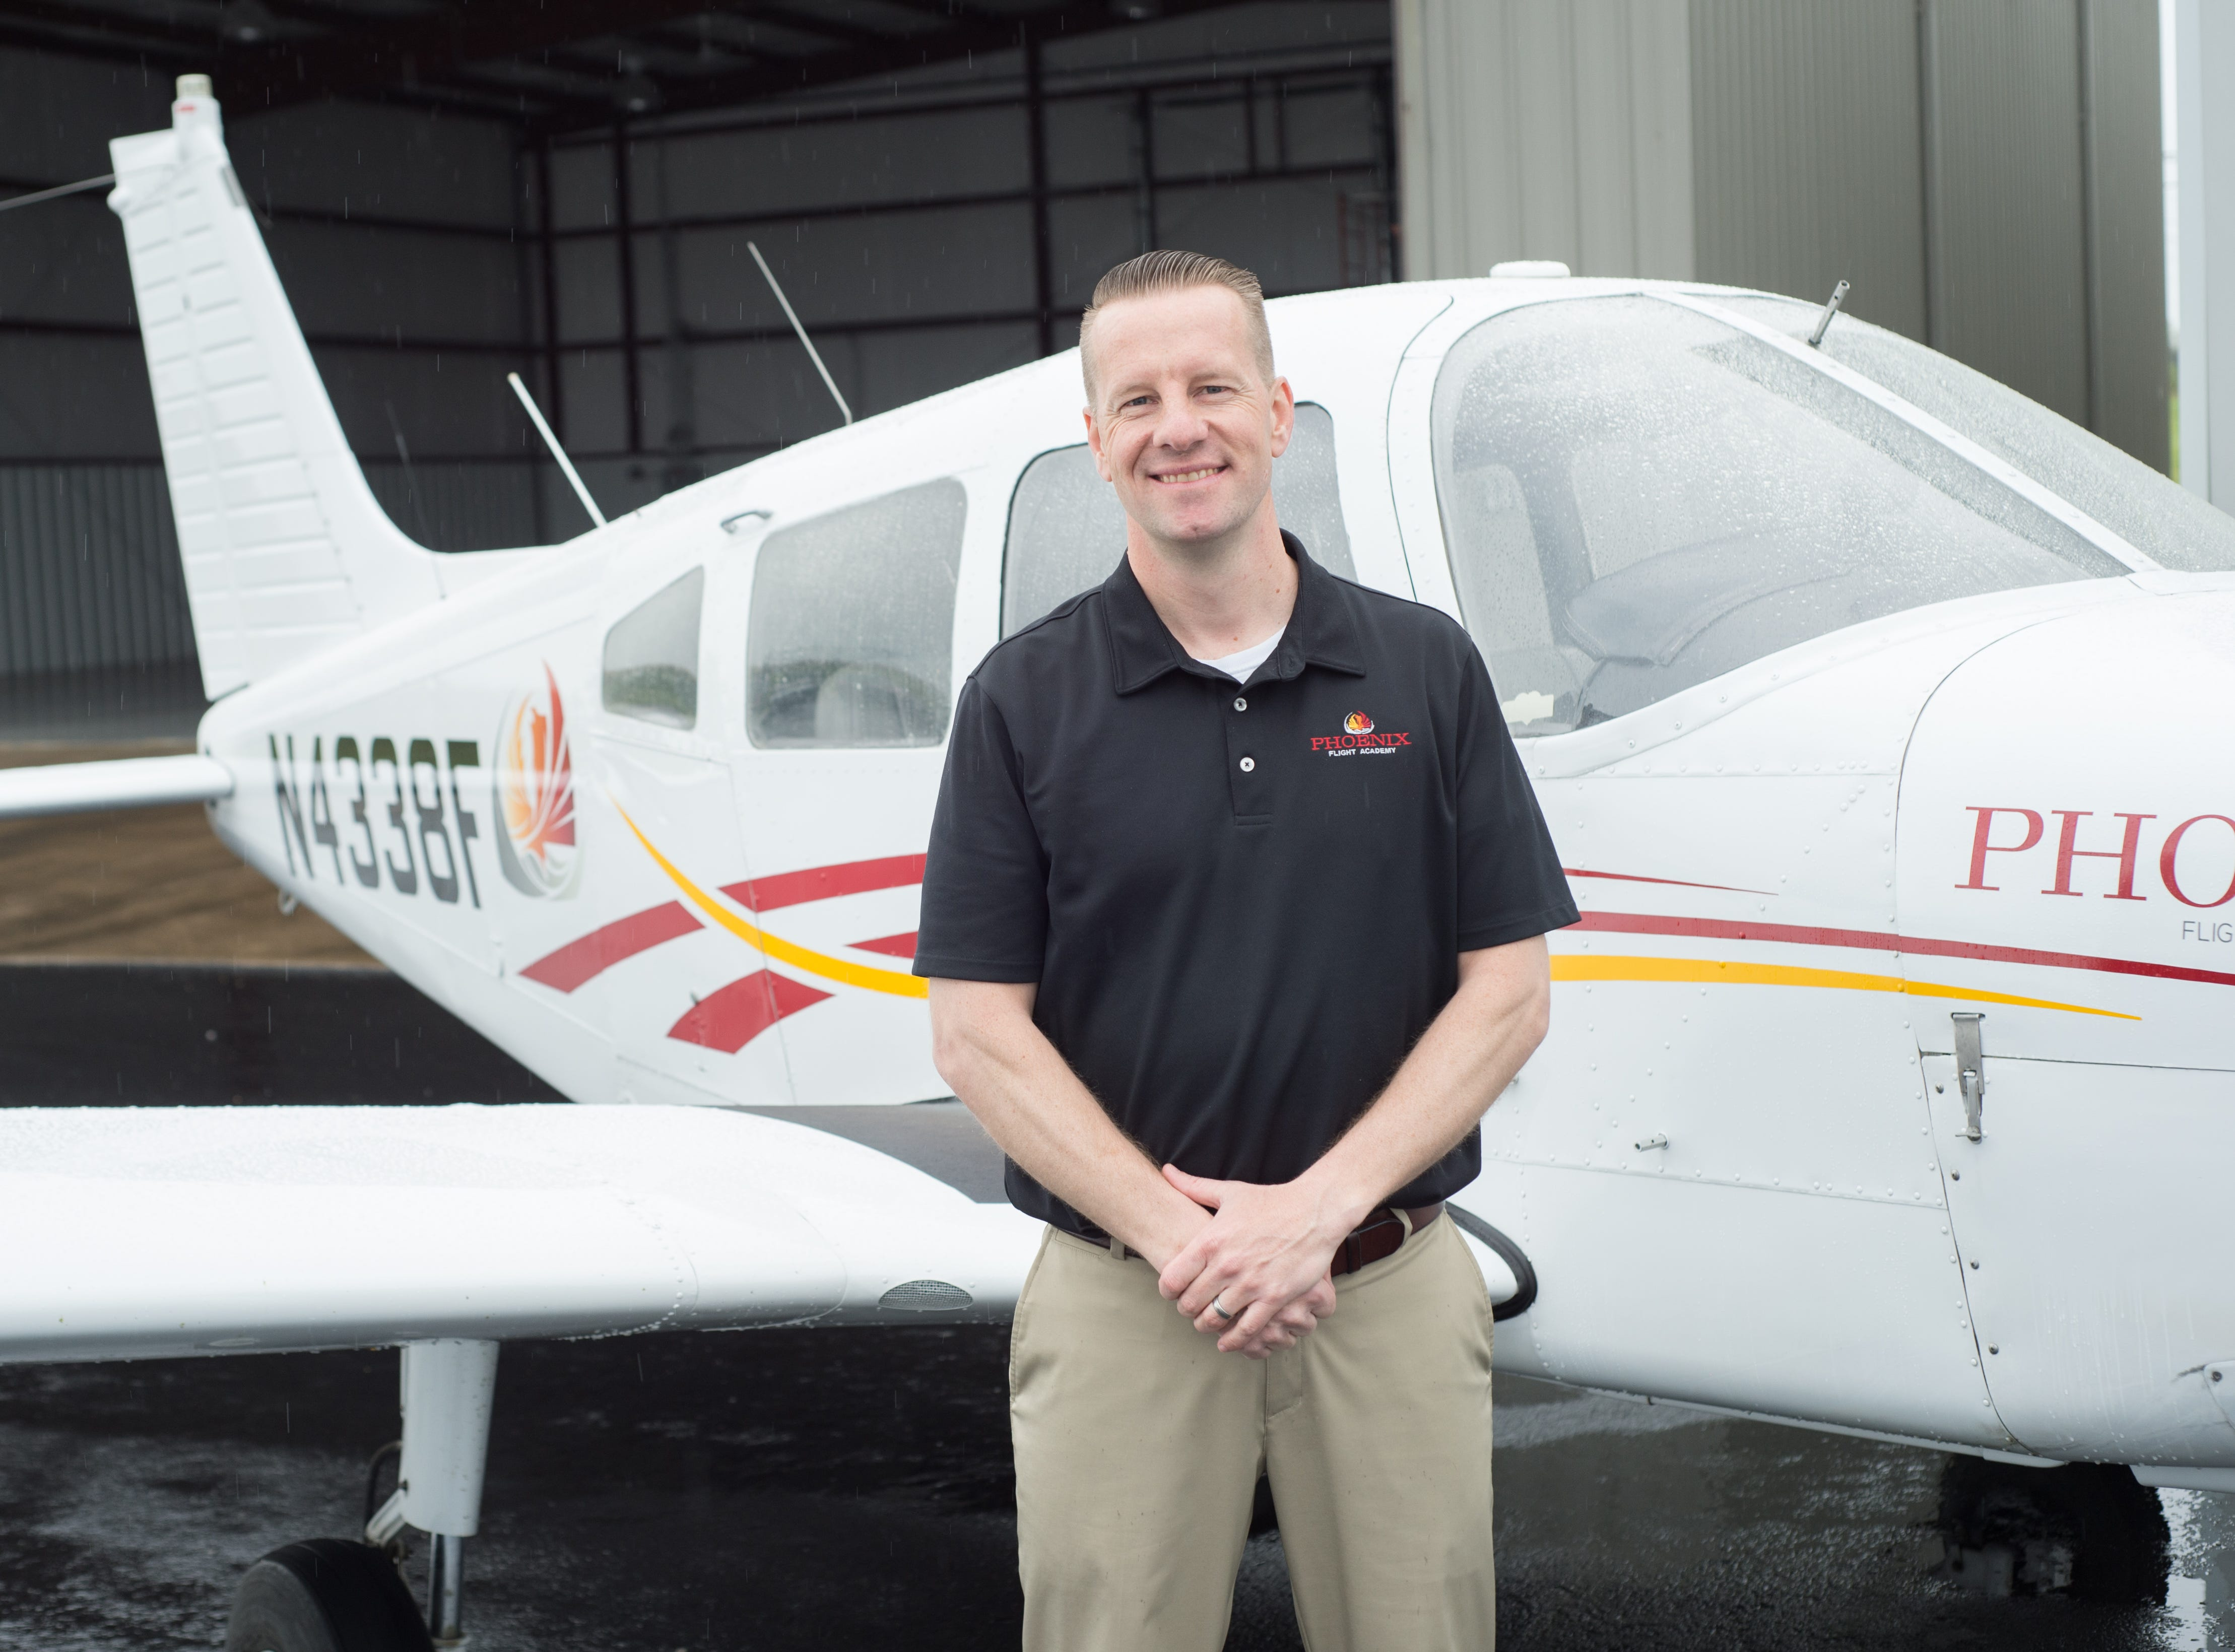 Phoenix Flight Academy Flight School Manager Steve Stryker pauses for a photograph during a Fly-In Breakfast at the Sumner County Regional Airport in Gallatin on Saturday, April 13.